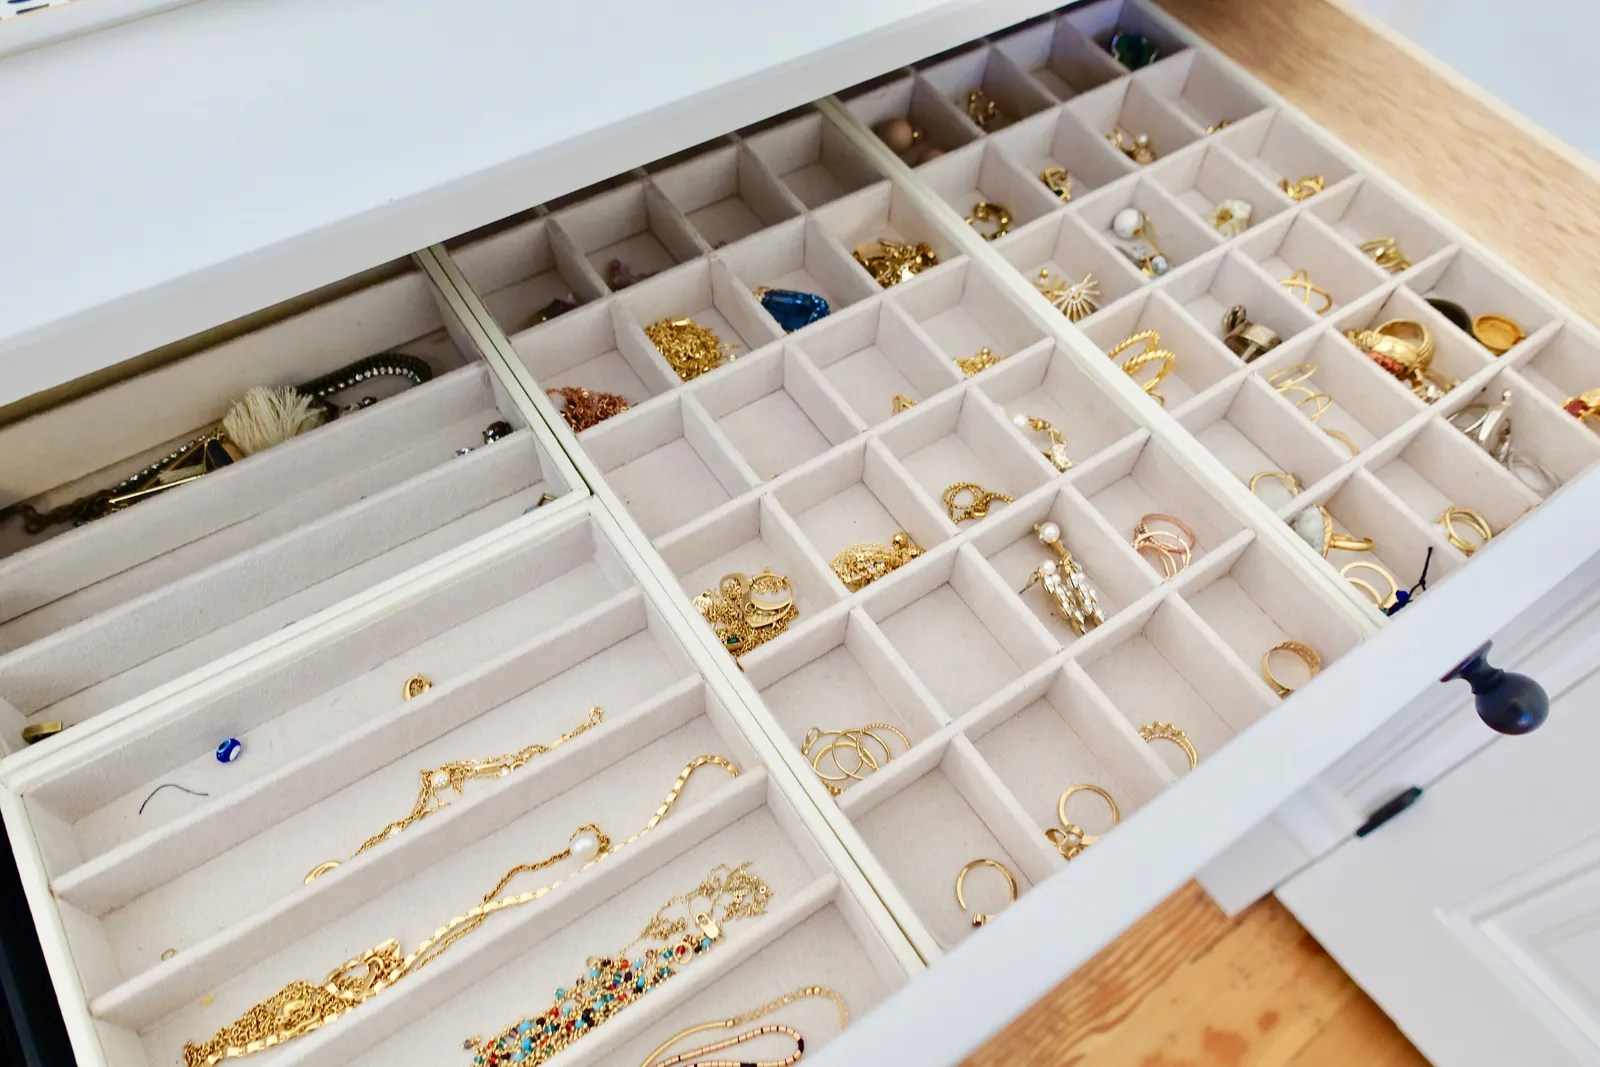 Diy Jewelry Organization Ideas The Only 2 Jewelry Storage Ideas You Need Organization Tips For